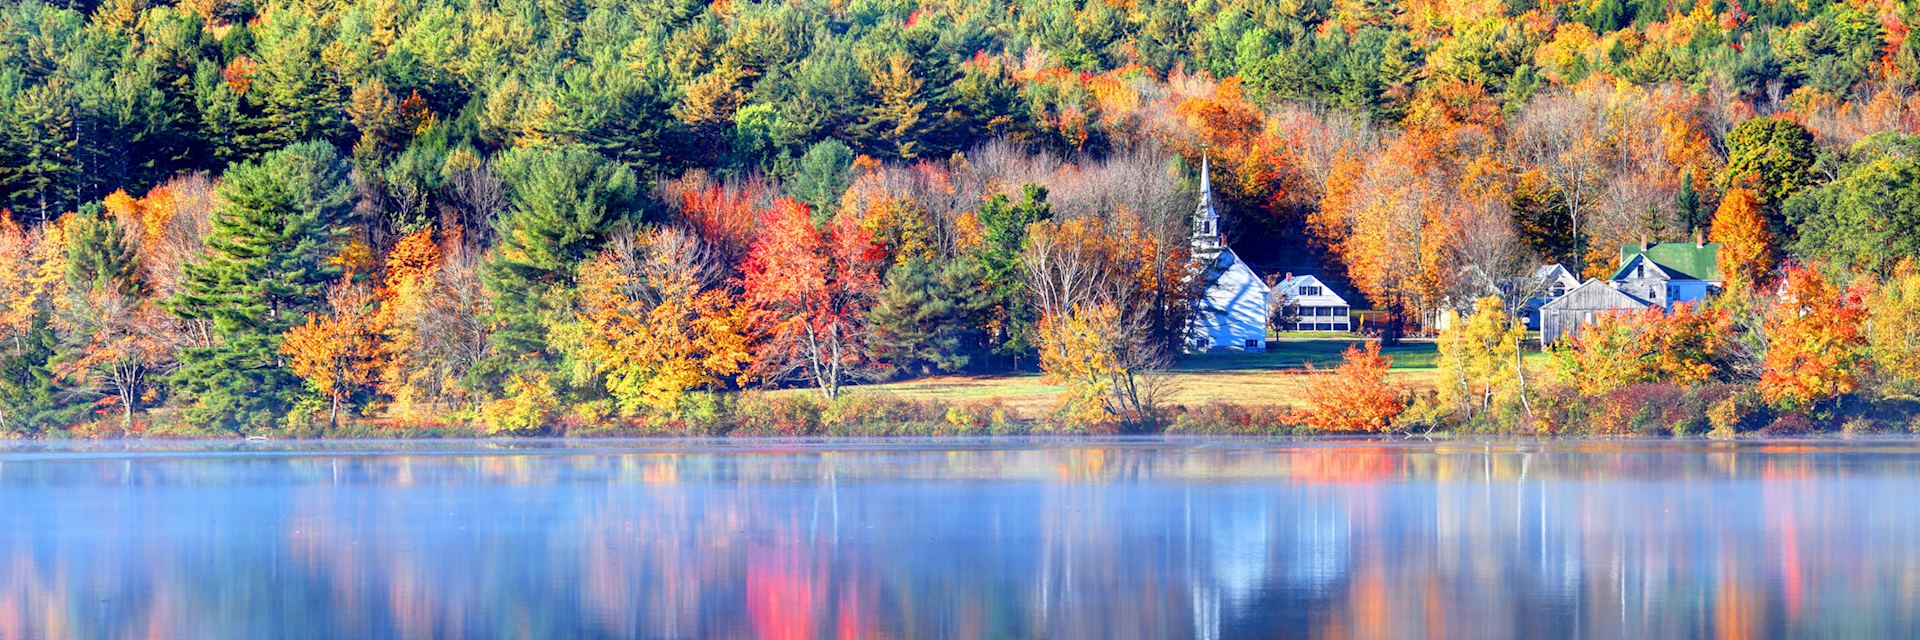 Autumn lake reflections in the White Mountains region, Vermont